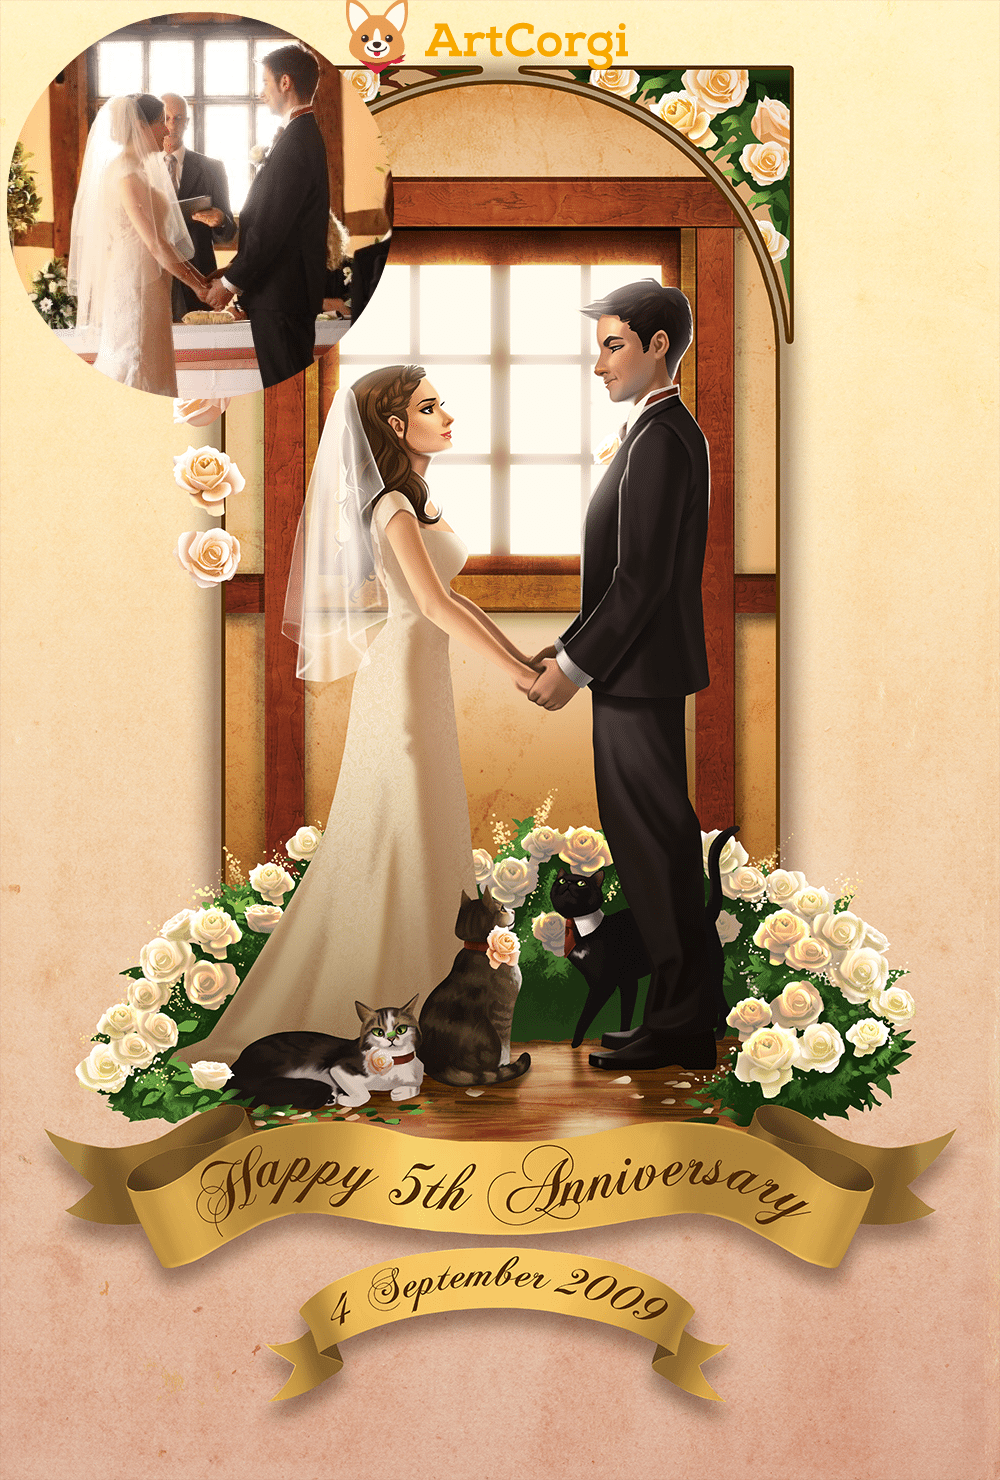 Vicky at her wedding by Angeline Roussel via ArtCorgi Before and After